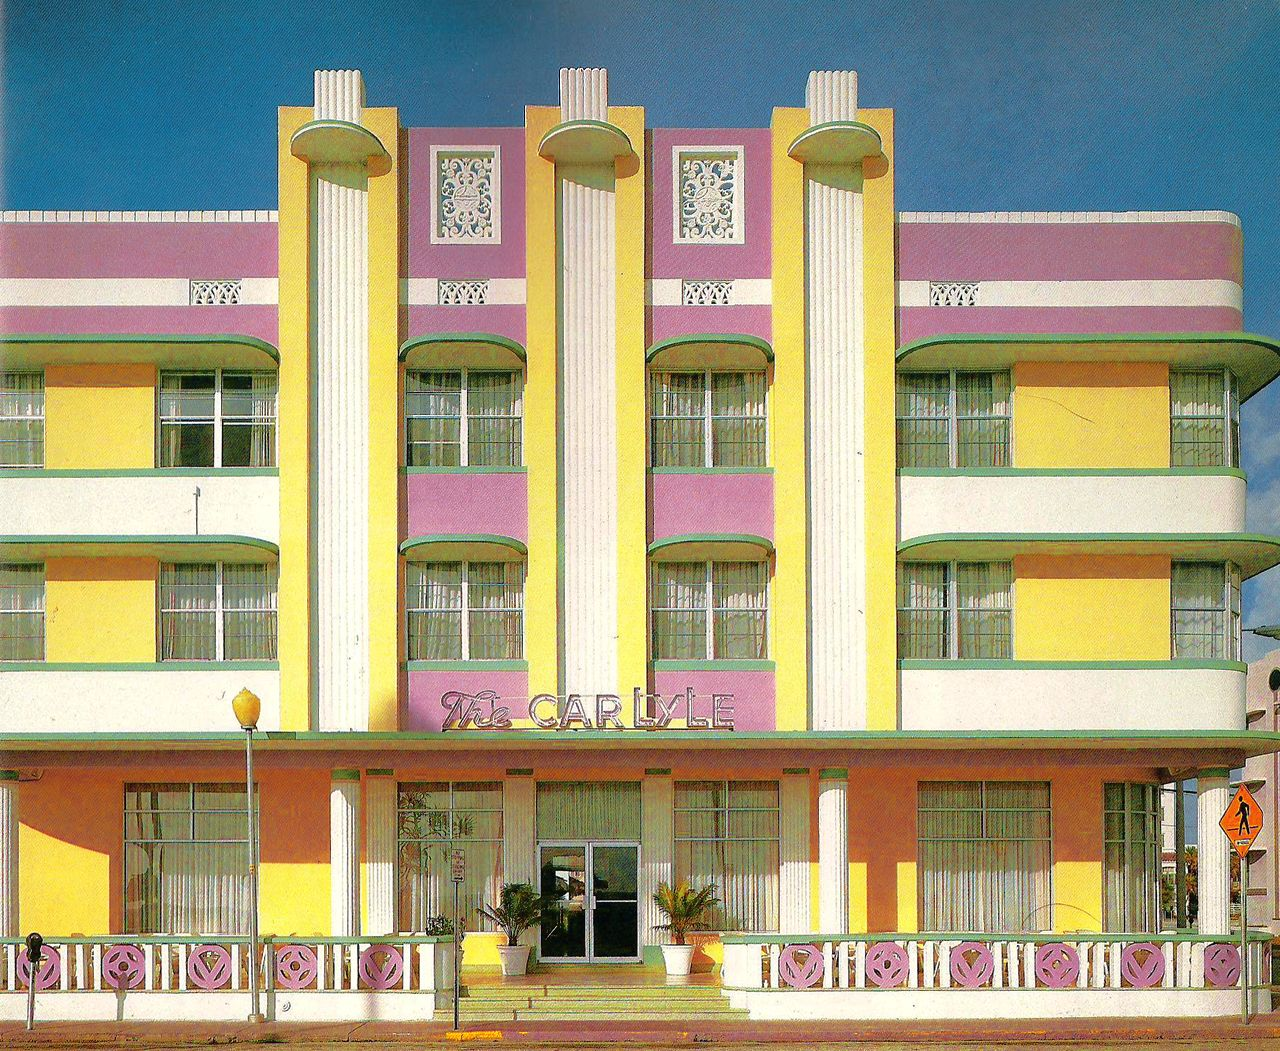 Pictured on cover of Tropical Deco: The Architecture and Design of Old Miami Beach by Laura Cerwinske, Random House Incorporated, 1981.